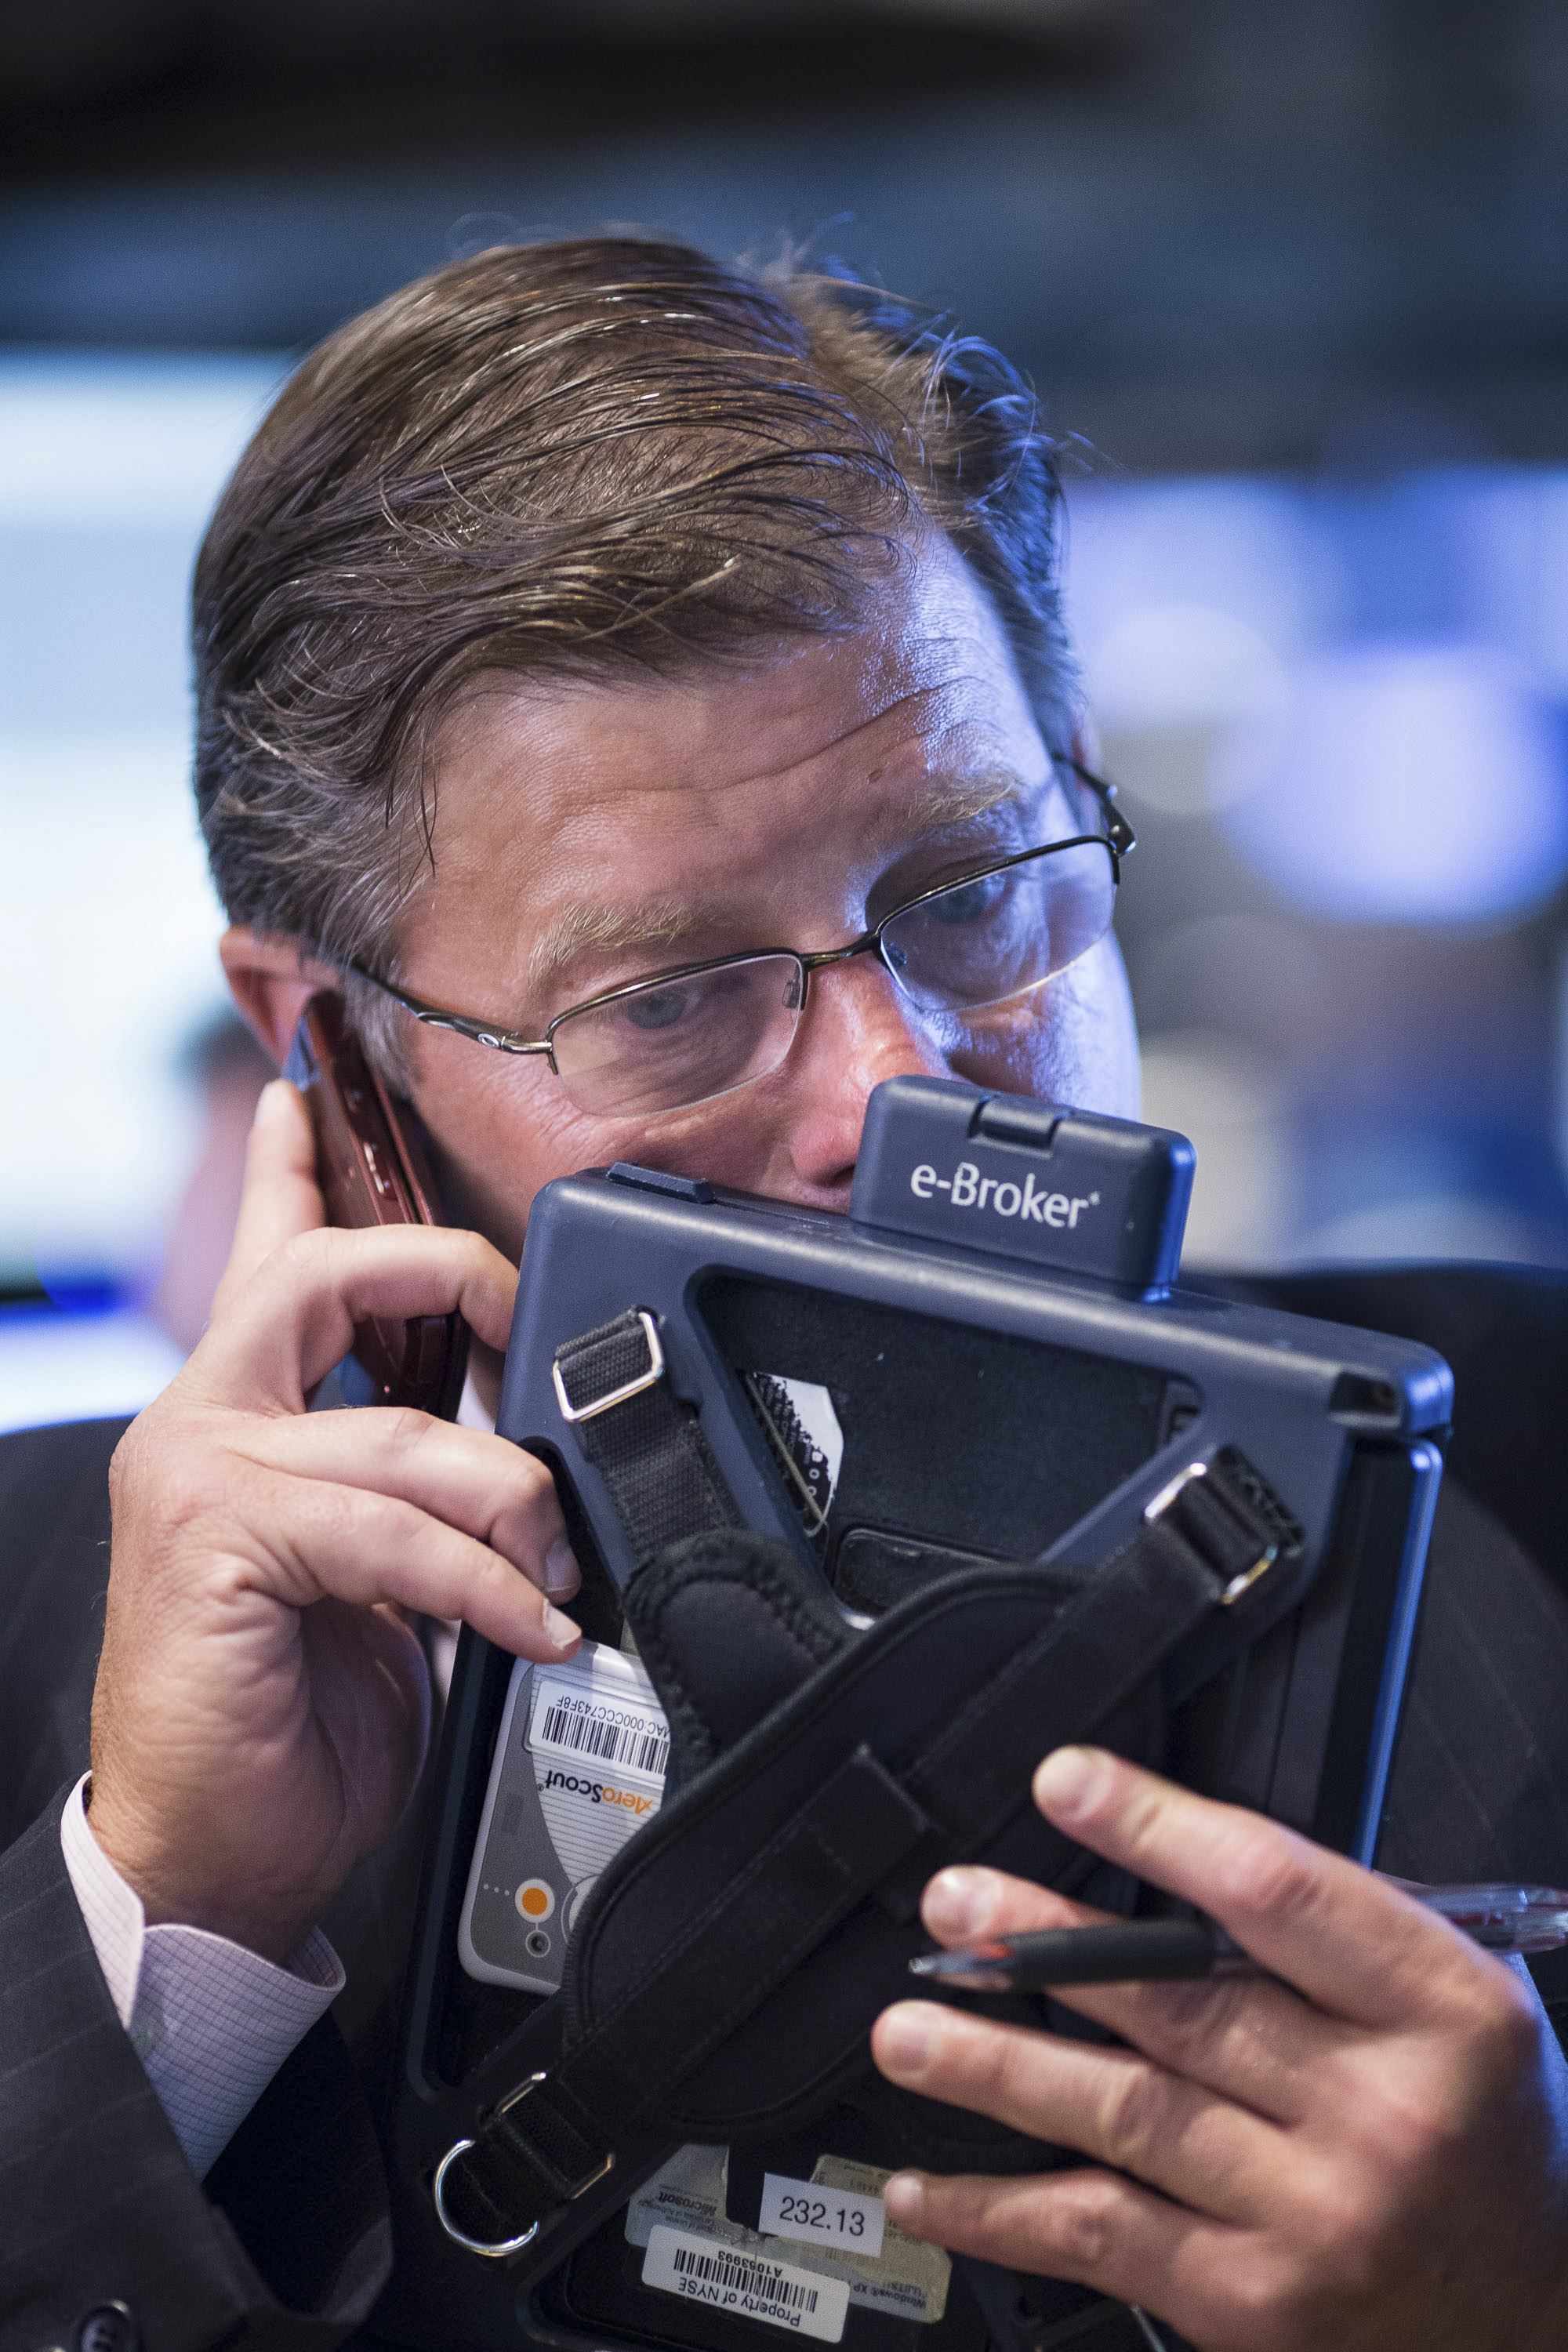 On the phone with the banks. During IPO's the floor is a chorus of muted communications punctuated by occasional loud questions about projected prices and estimated opening times.